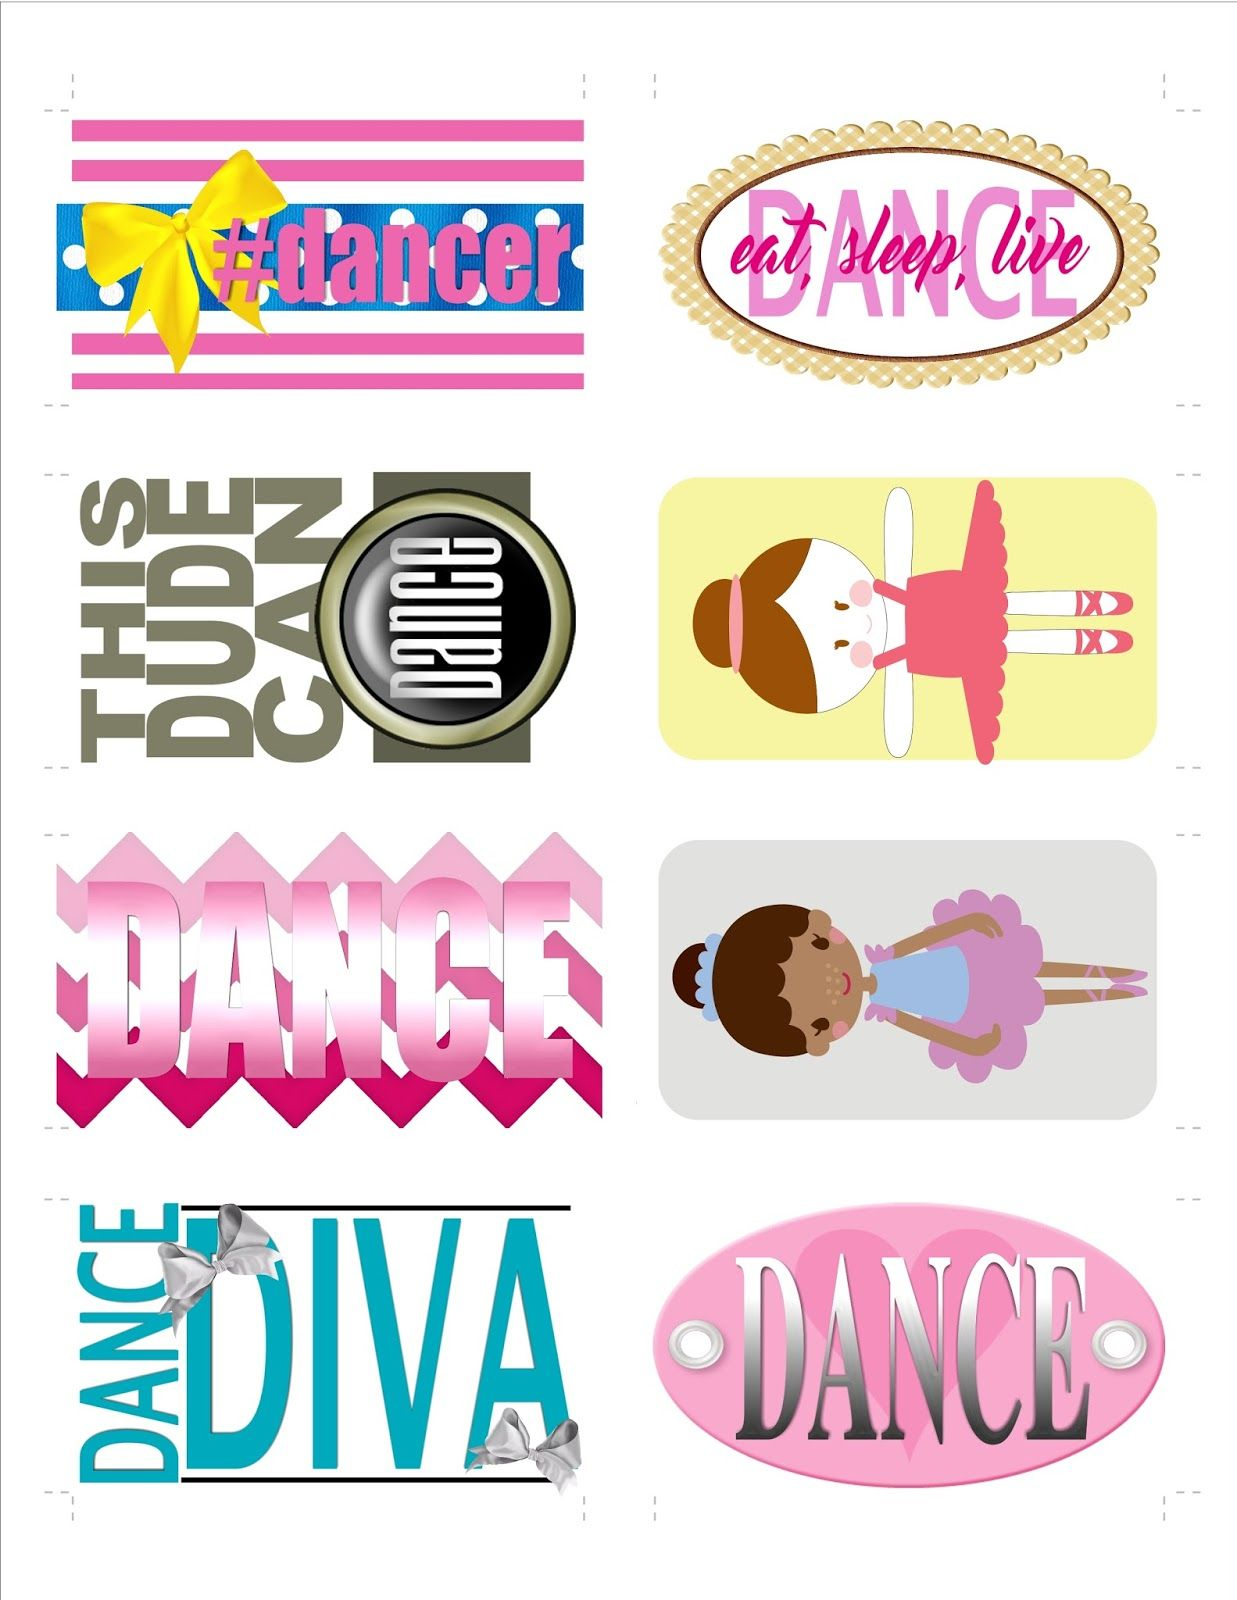 Dance recital gift or favor dance themed bag tags free printable from the lily of the valley craft room